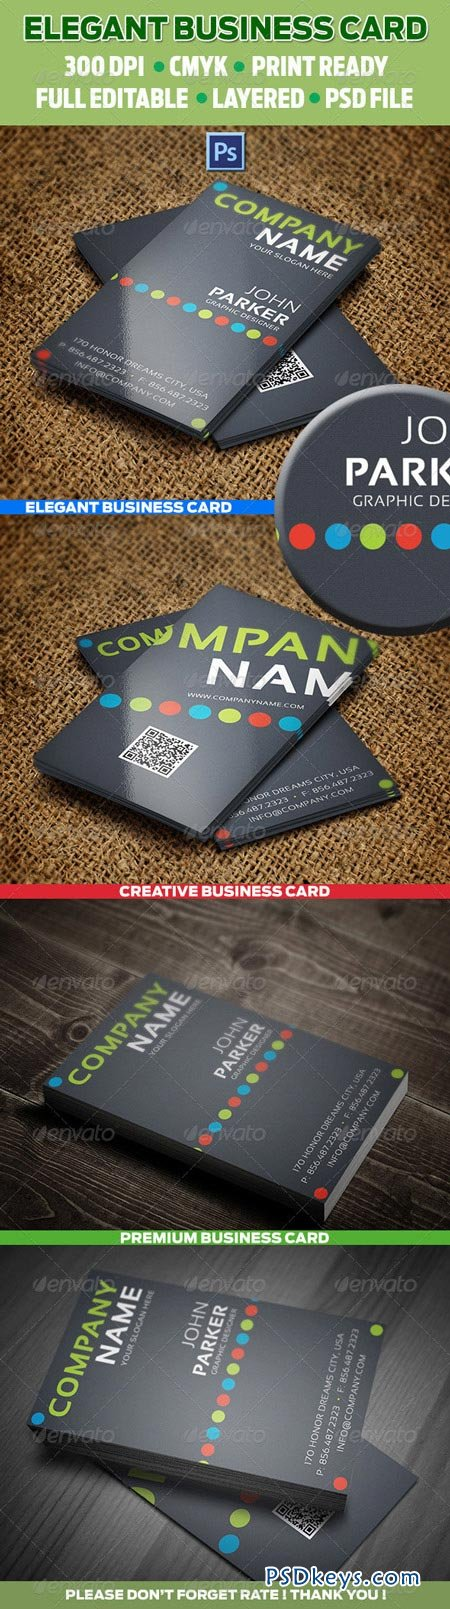 Creative Business Cards 17 3510493